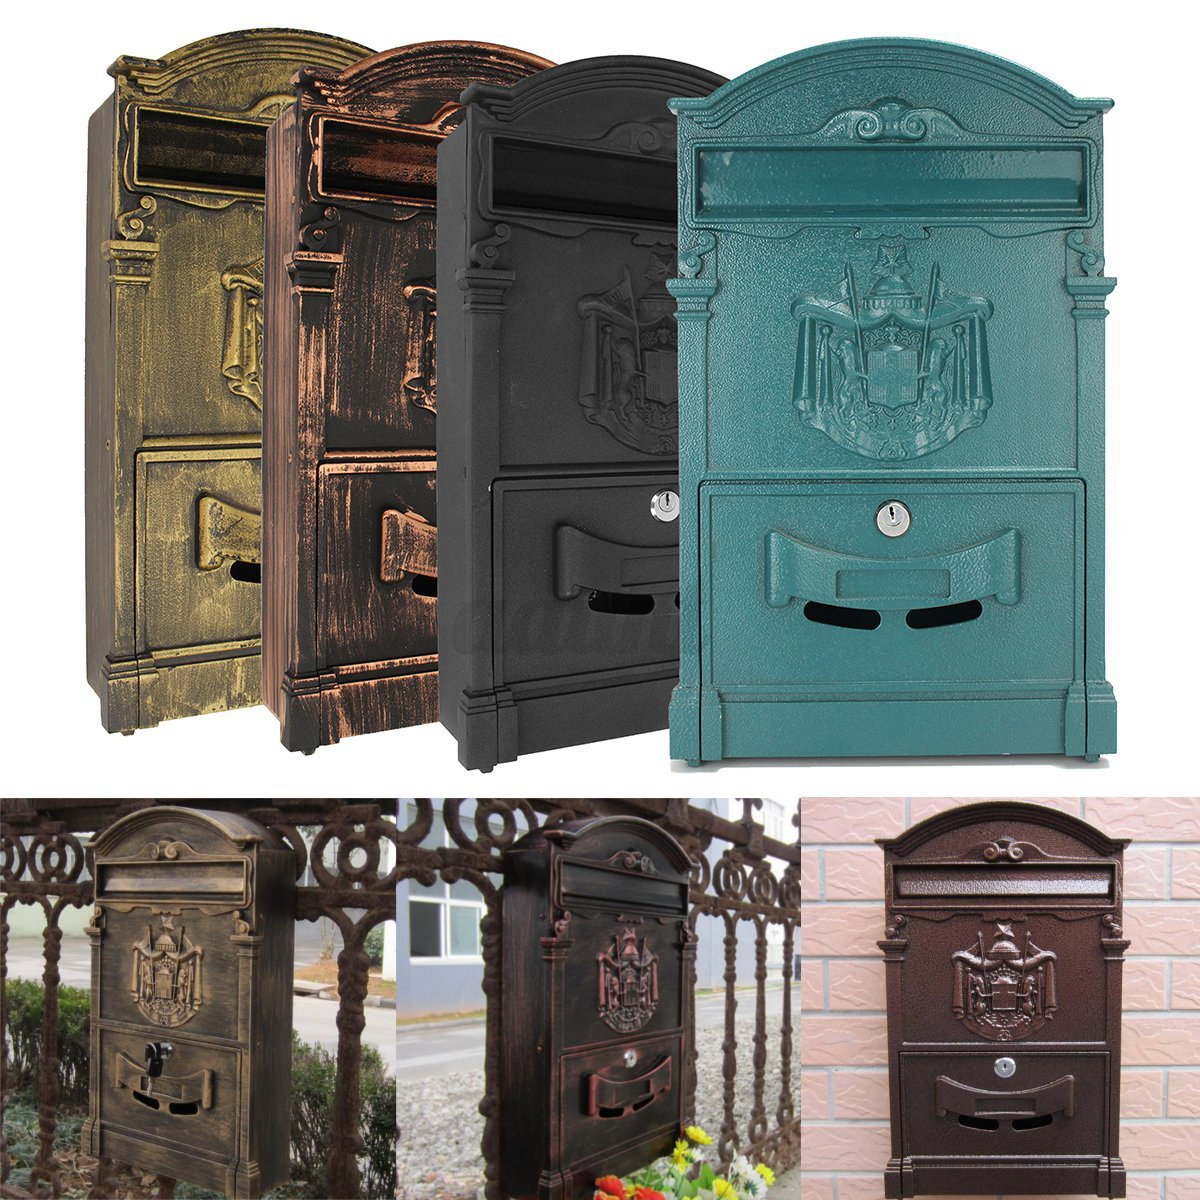 Small surface mounted replacement lock for antique furniture ebay - Vintage Retro Aluminum Wall Mount Mailboxes Home Garden